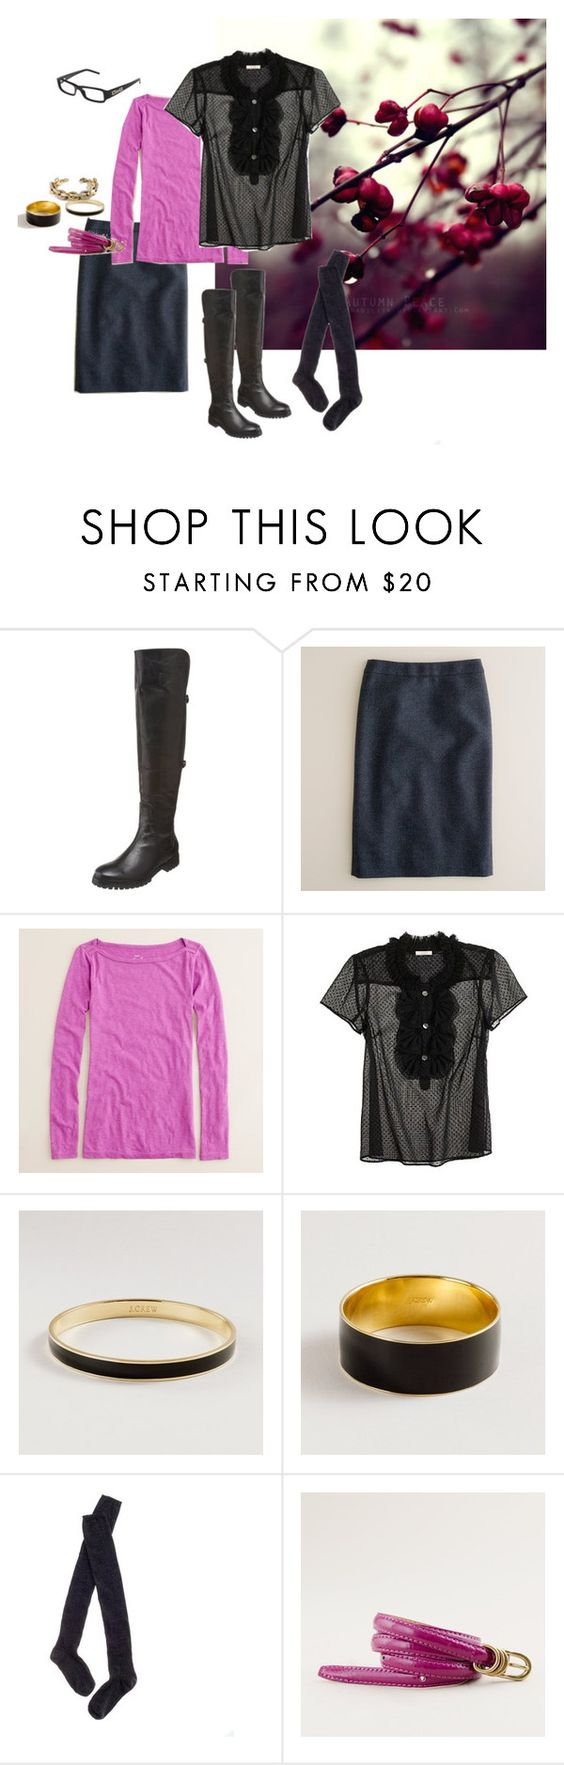 Back to Work: Black Dahlia by mommysshoppingagain on Polyvore featuring J.Crew, Madewell, Cole Haan, D&G and jcrew